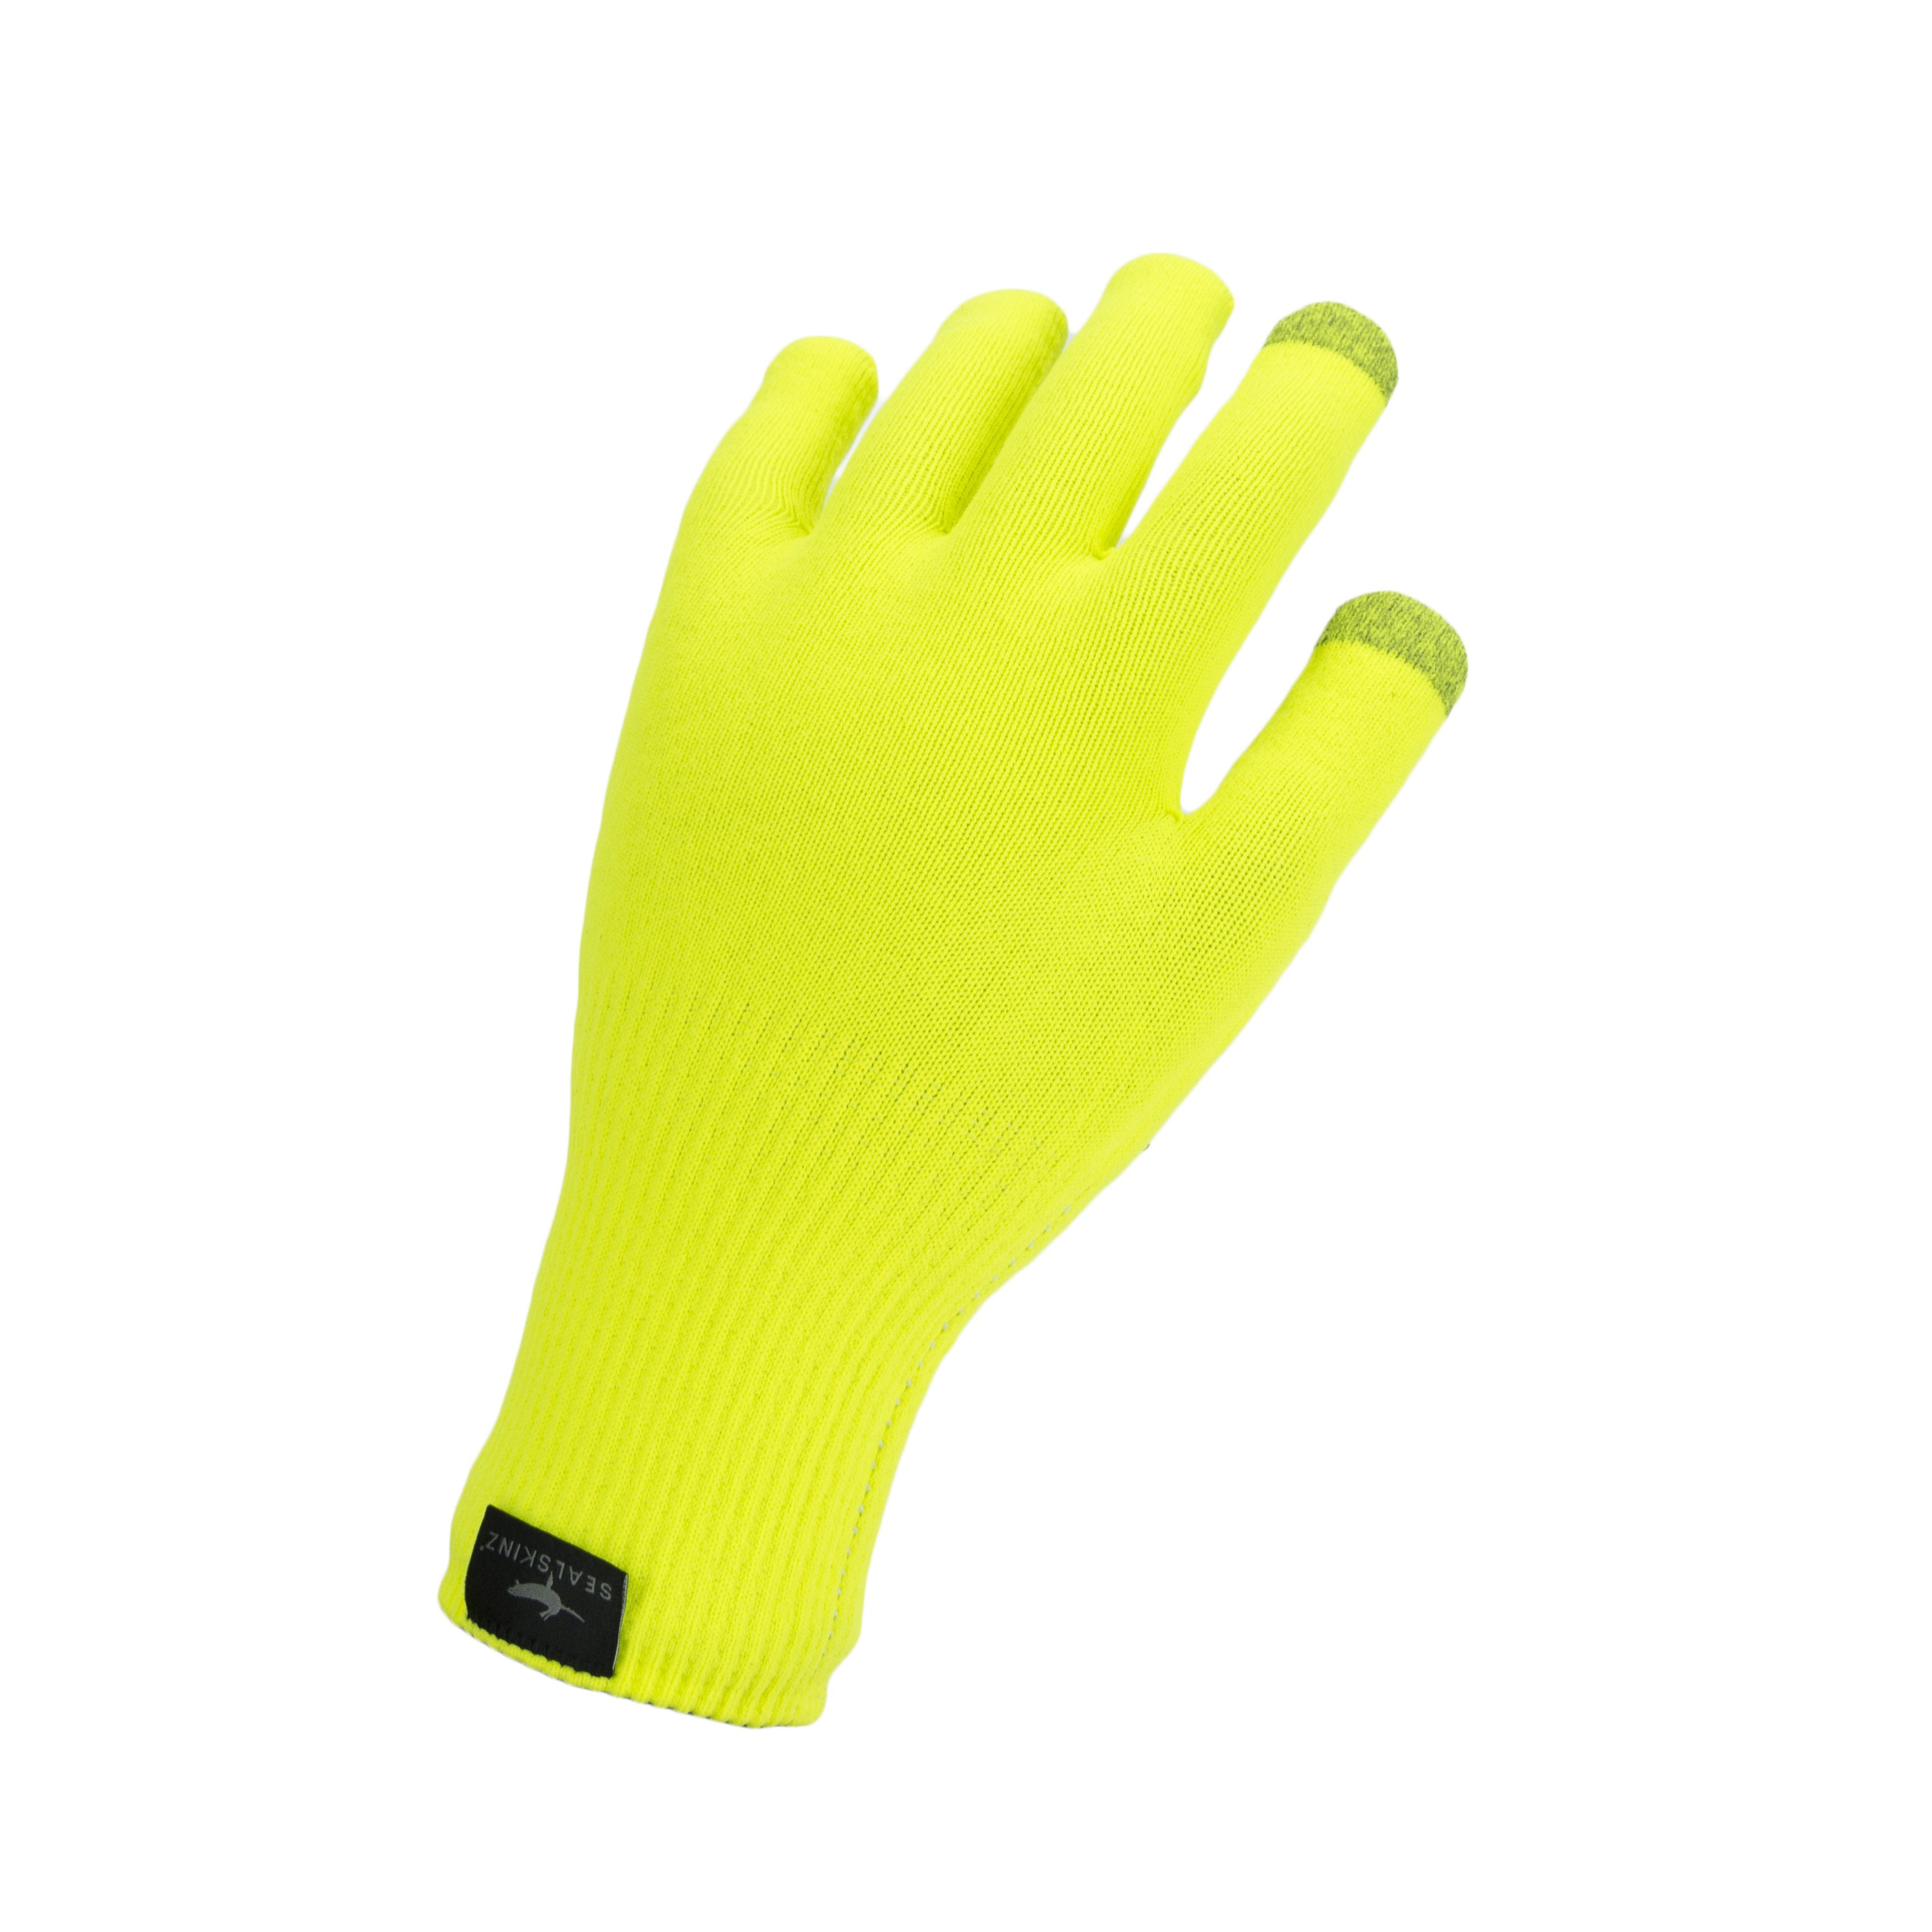 Waterproof All Weather Ultra Grip Knitted Glove